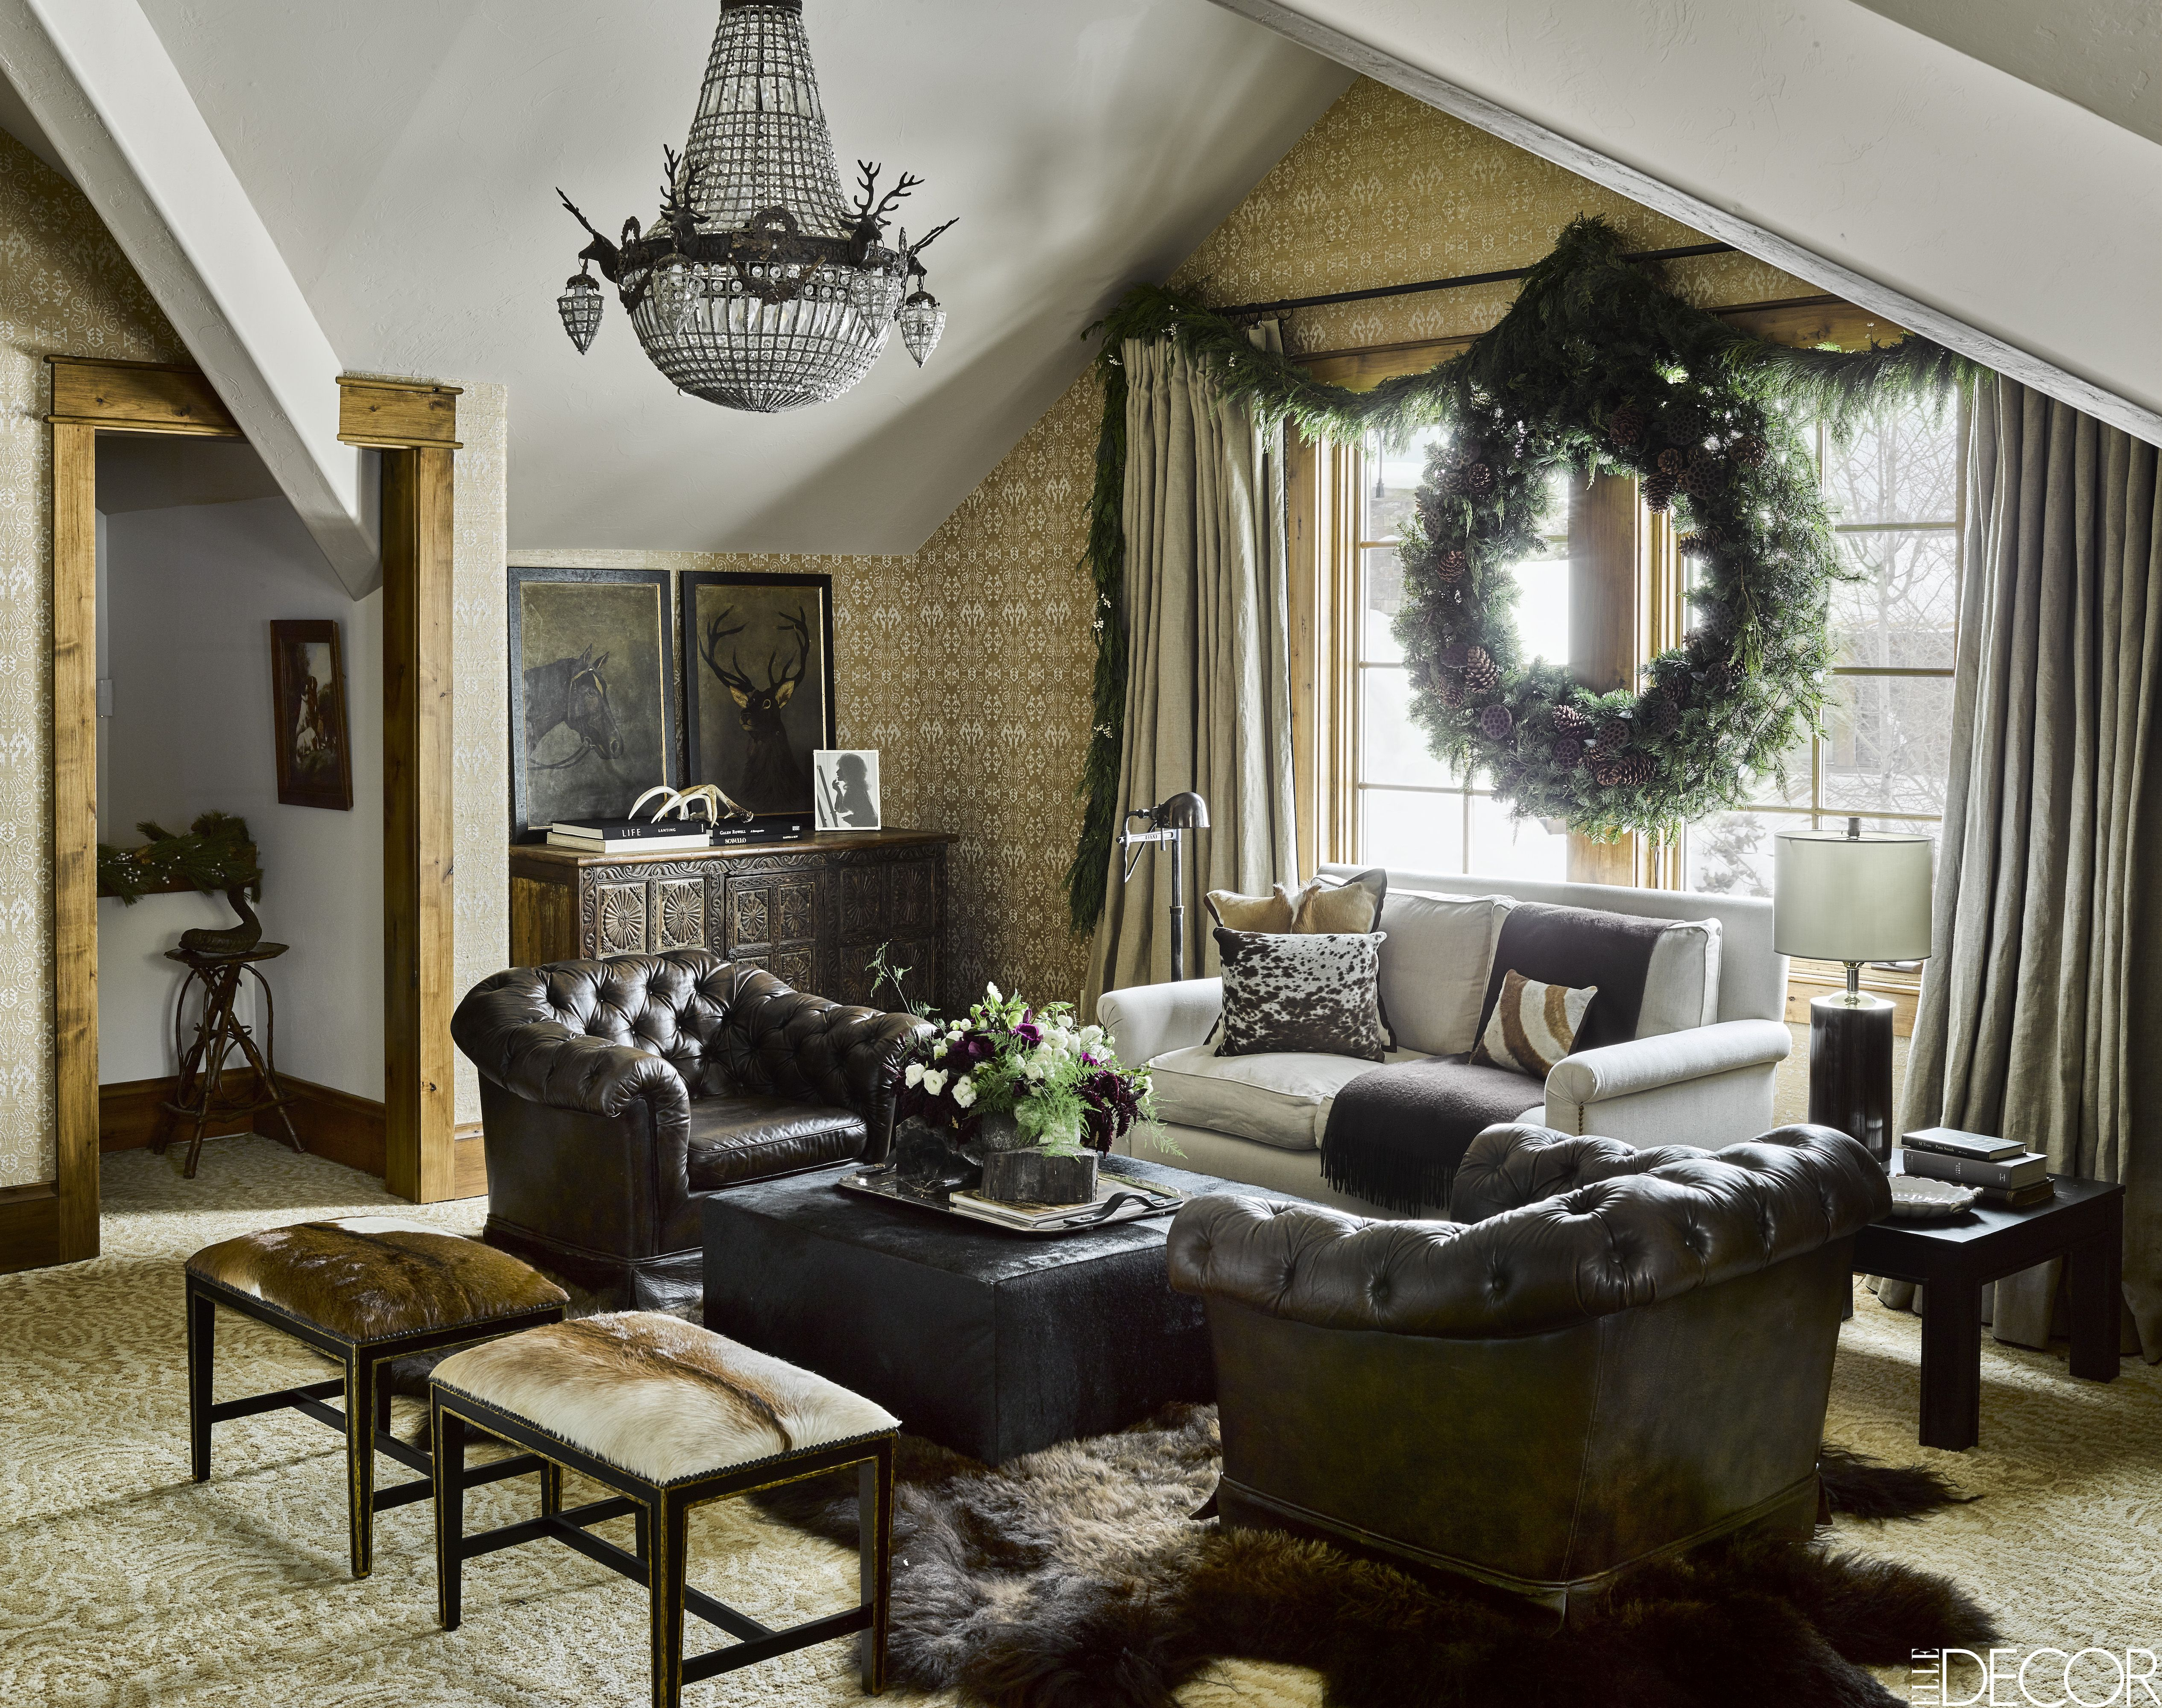 Photos Of Living Room Designs 50 Gorgeous Living Room Ideas Stylish Living Room Design Photos